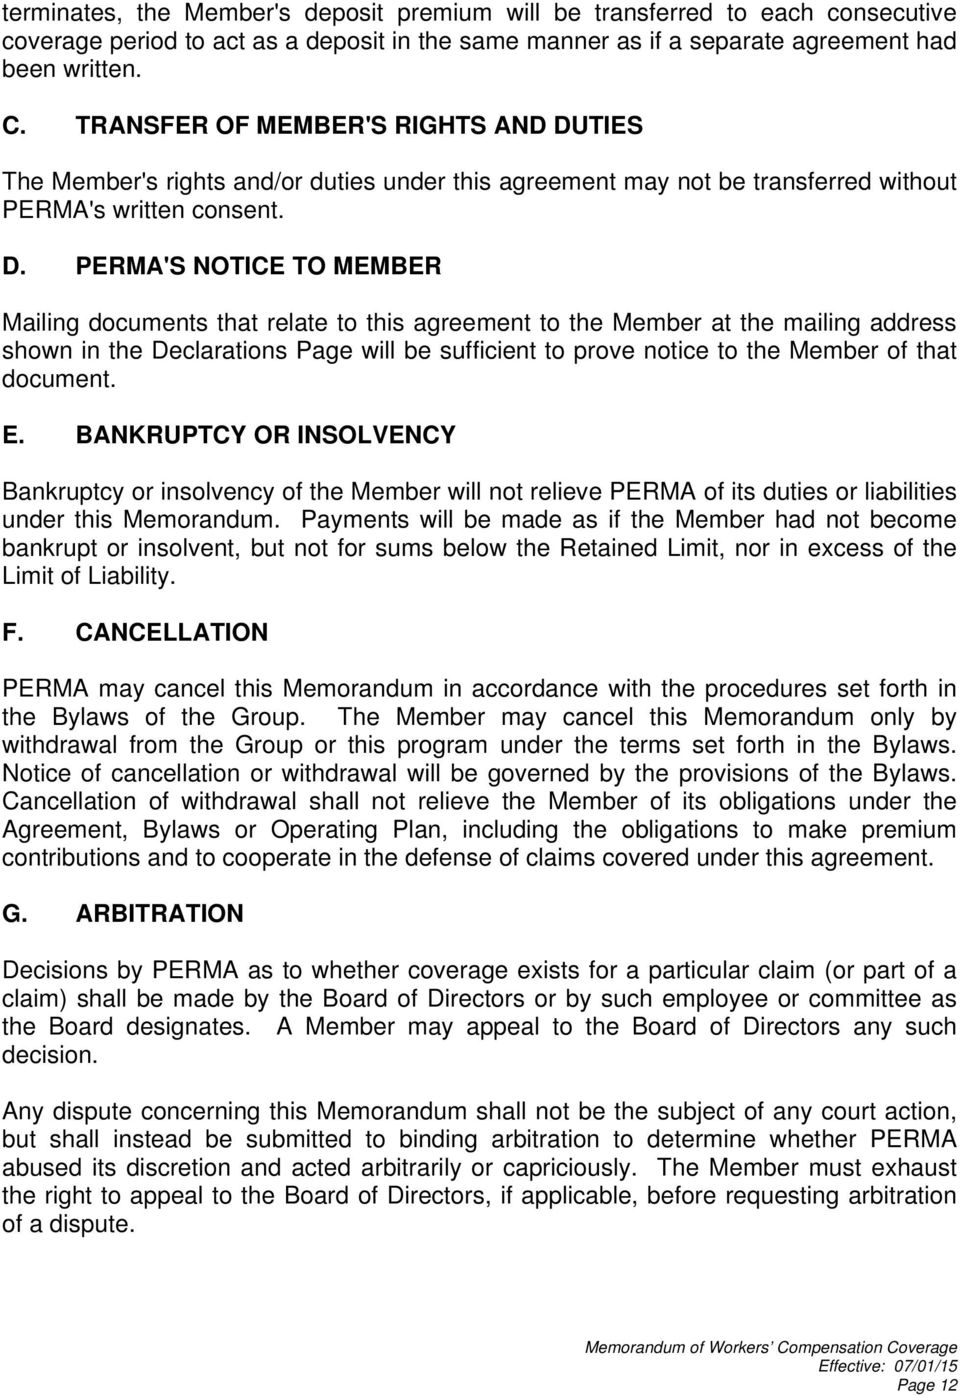 TIES The Member's rights and/or duties under this agreement may not be transferred without PERMA's written consent. D.